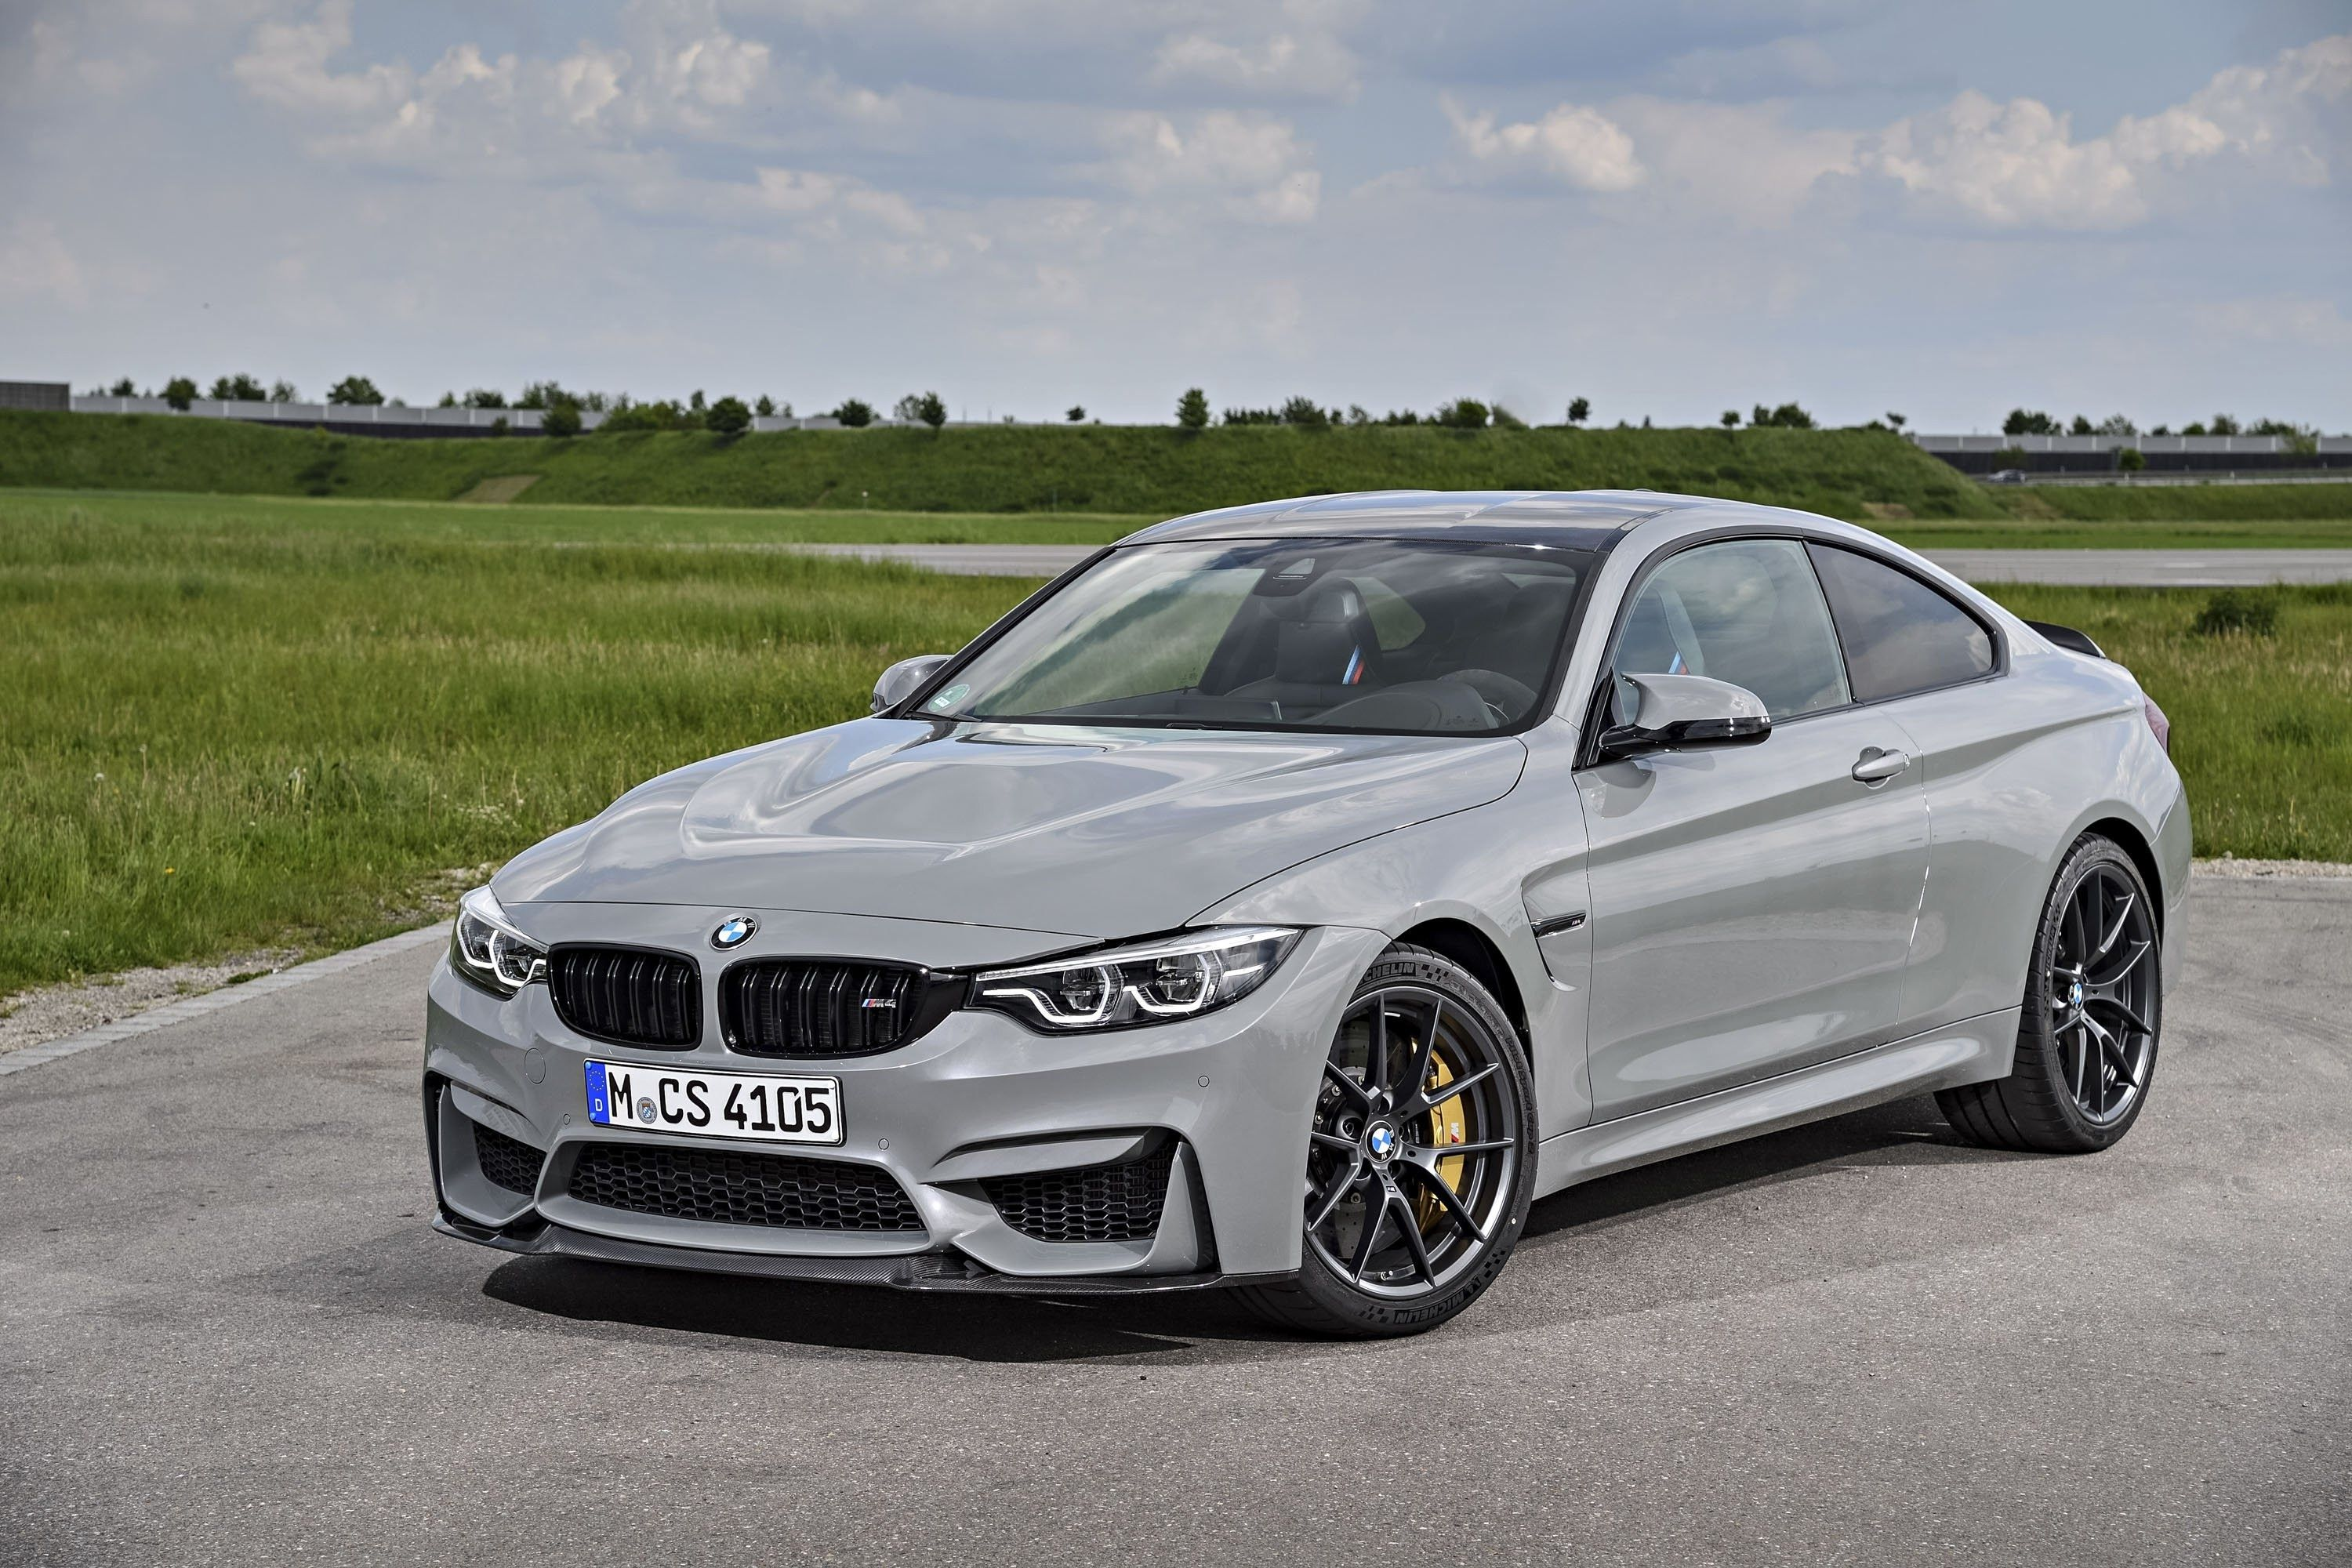 2020 Bmw M4 Colors With Images Bmw M4 Bmw Bmw M4 Coupe